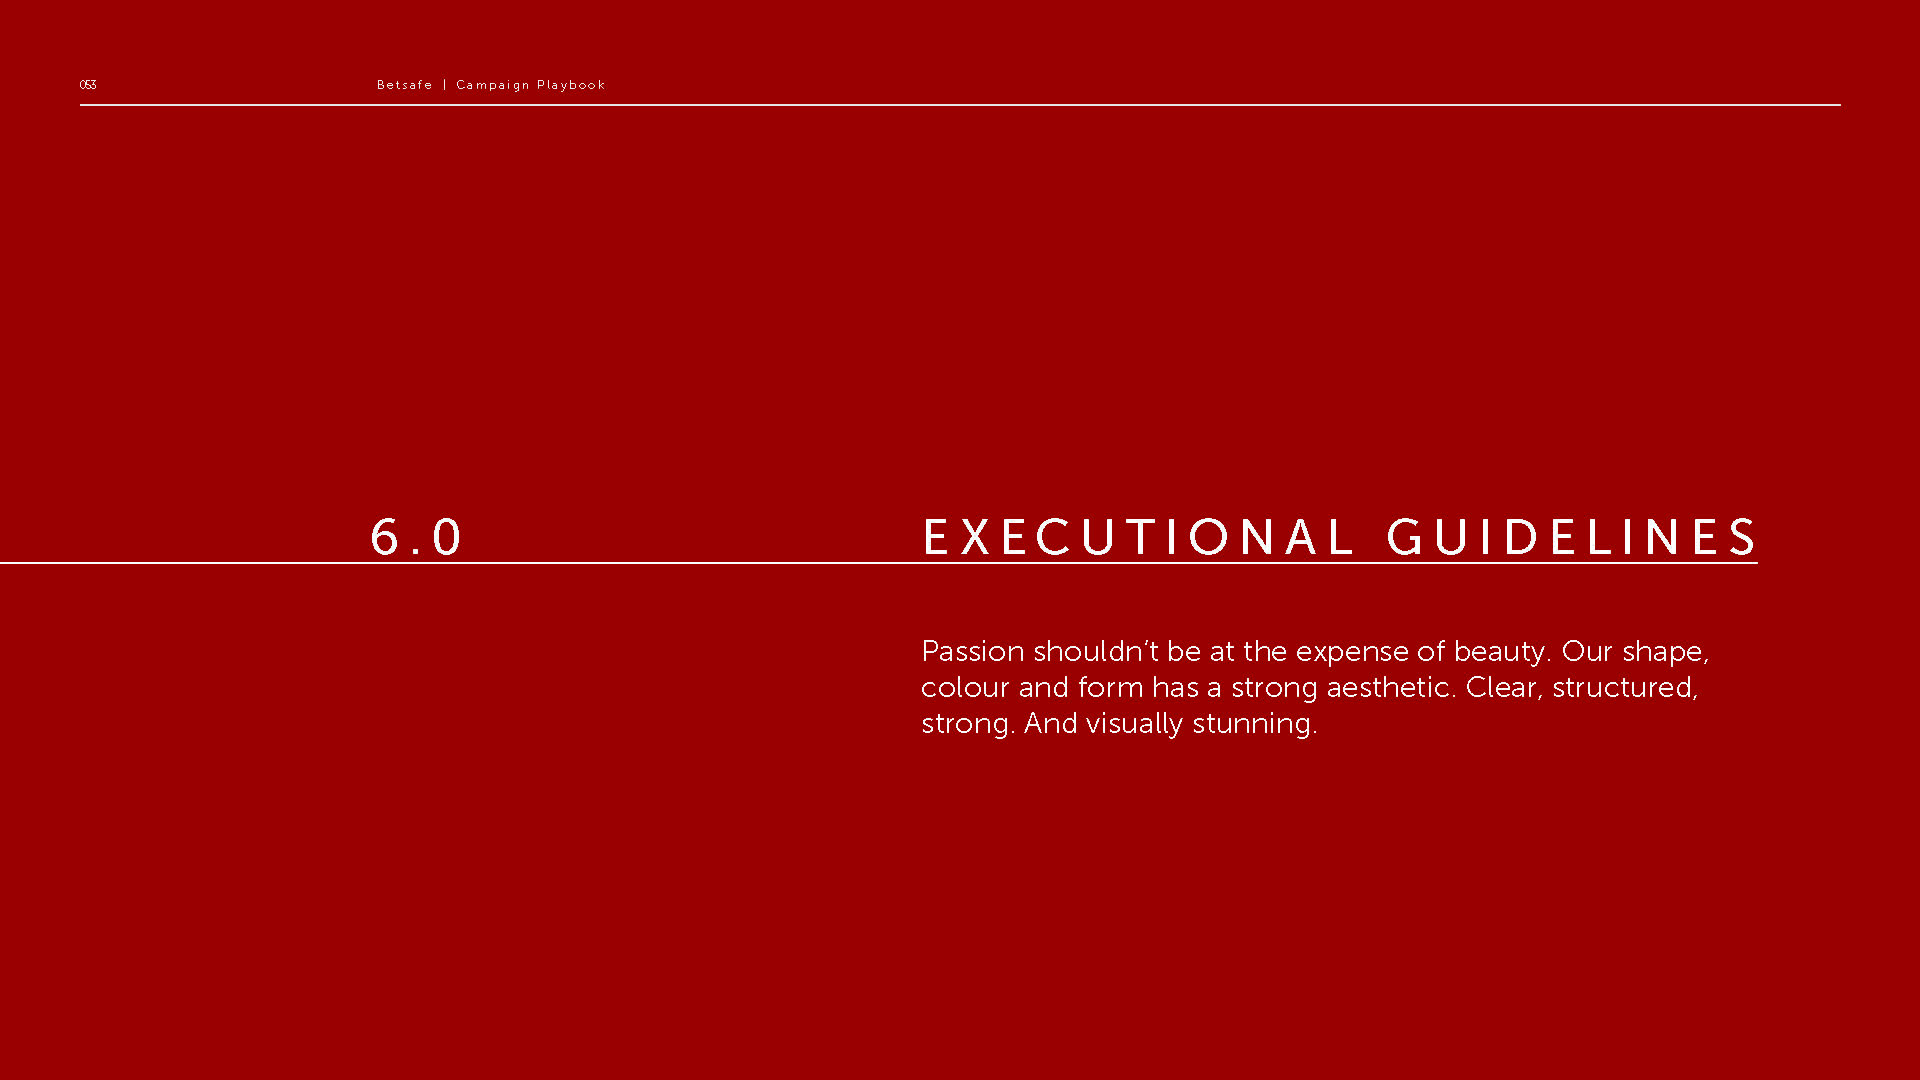 BETSAFE_GUIDELINES_DH_11-5_Page_53.jpg